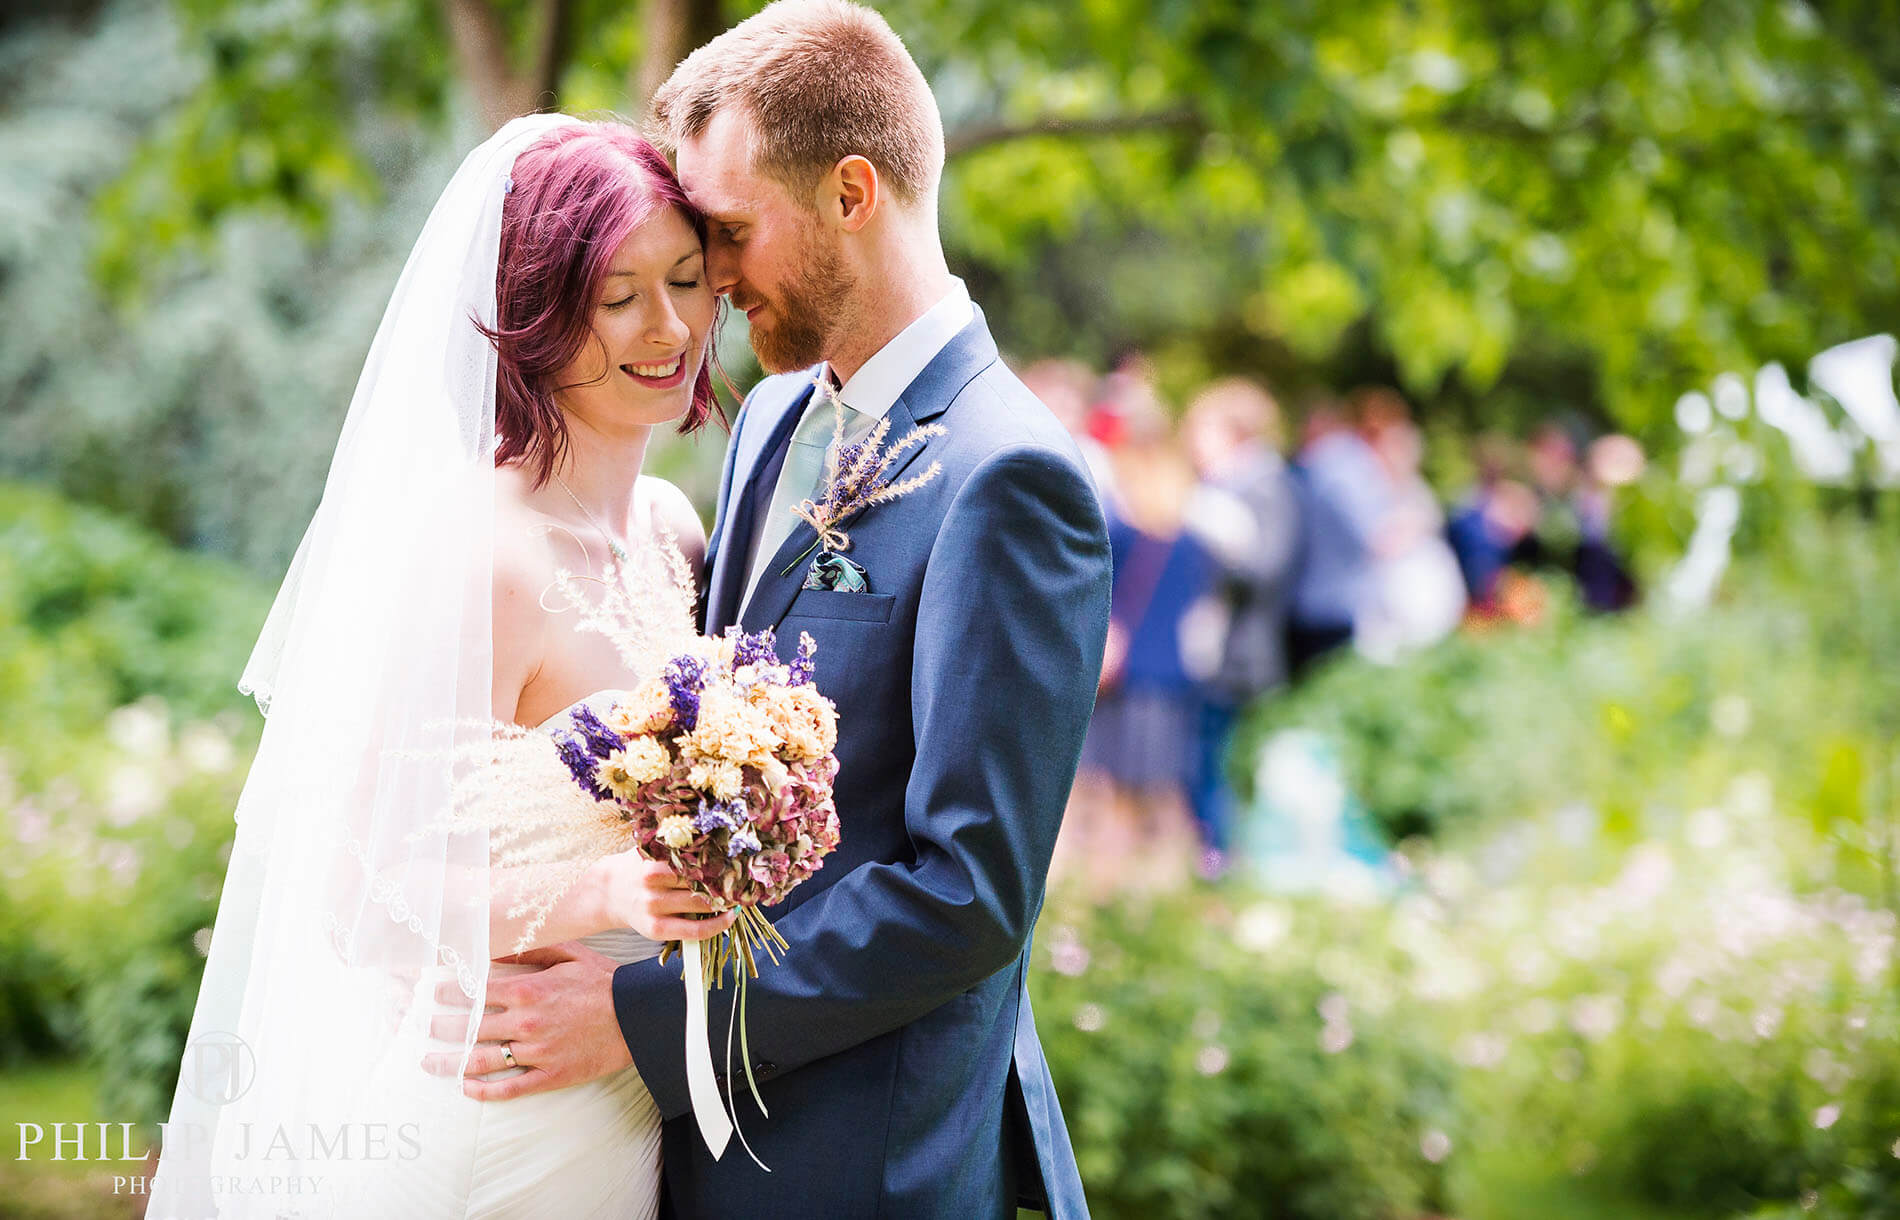 Birmingham Wedding Photographer - Philip James Photography based in Solihull (14 of 68)